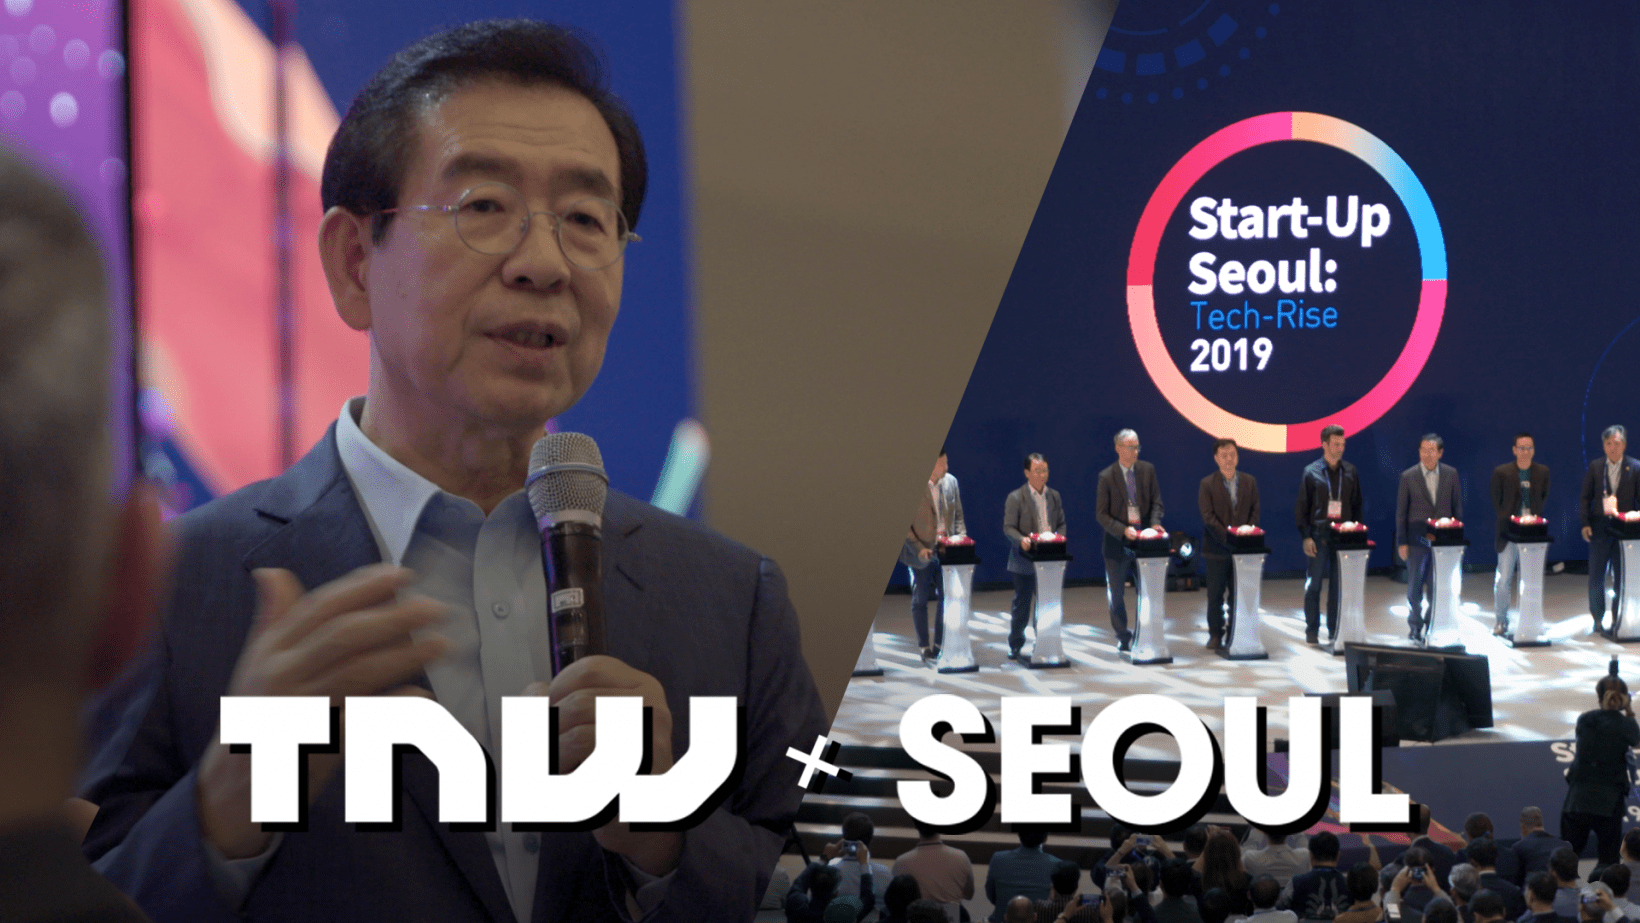 Watch the highlights from Seoul's leading startup event